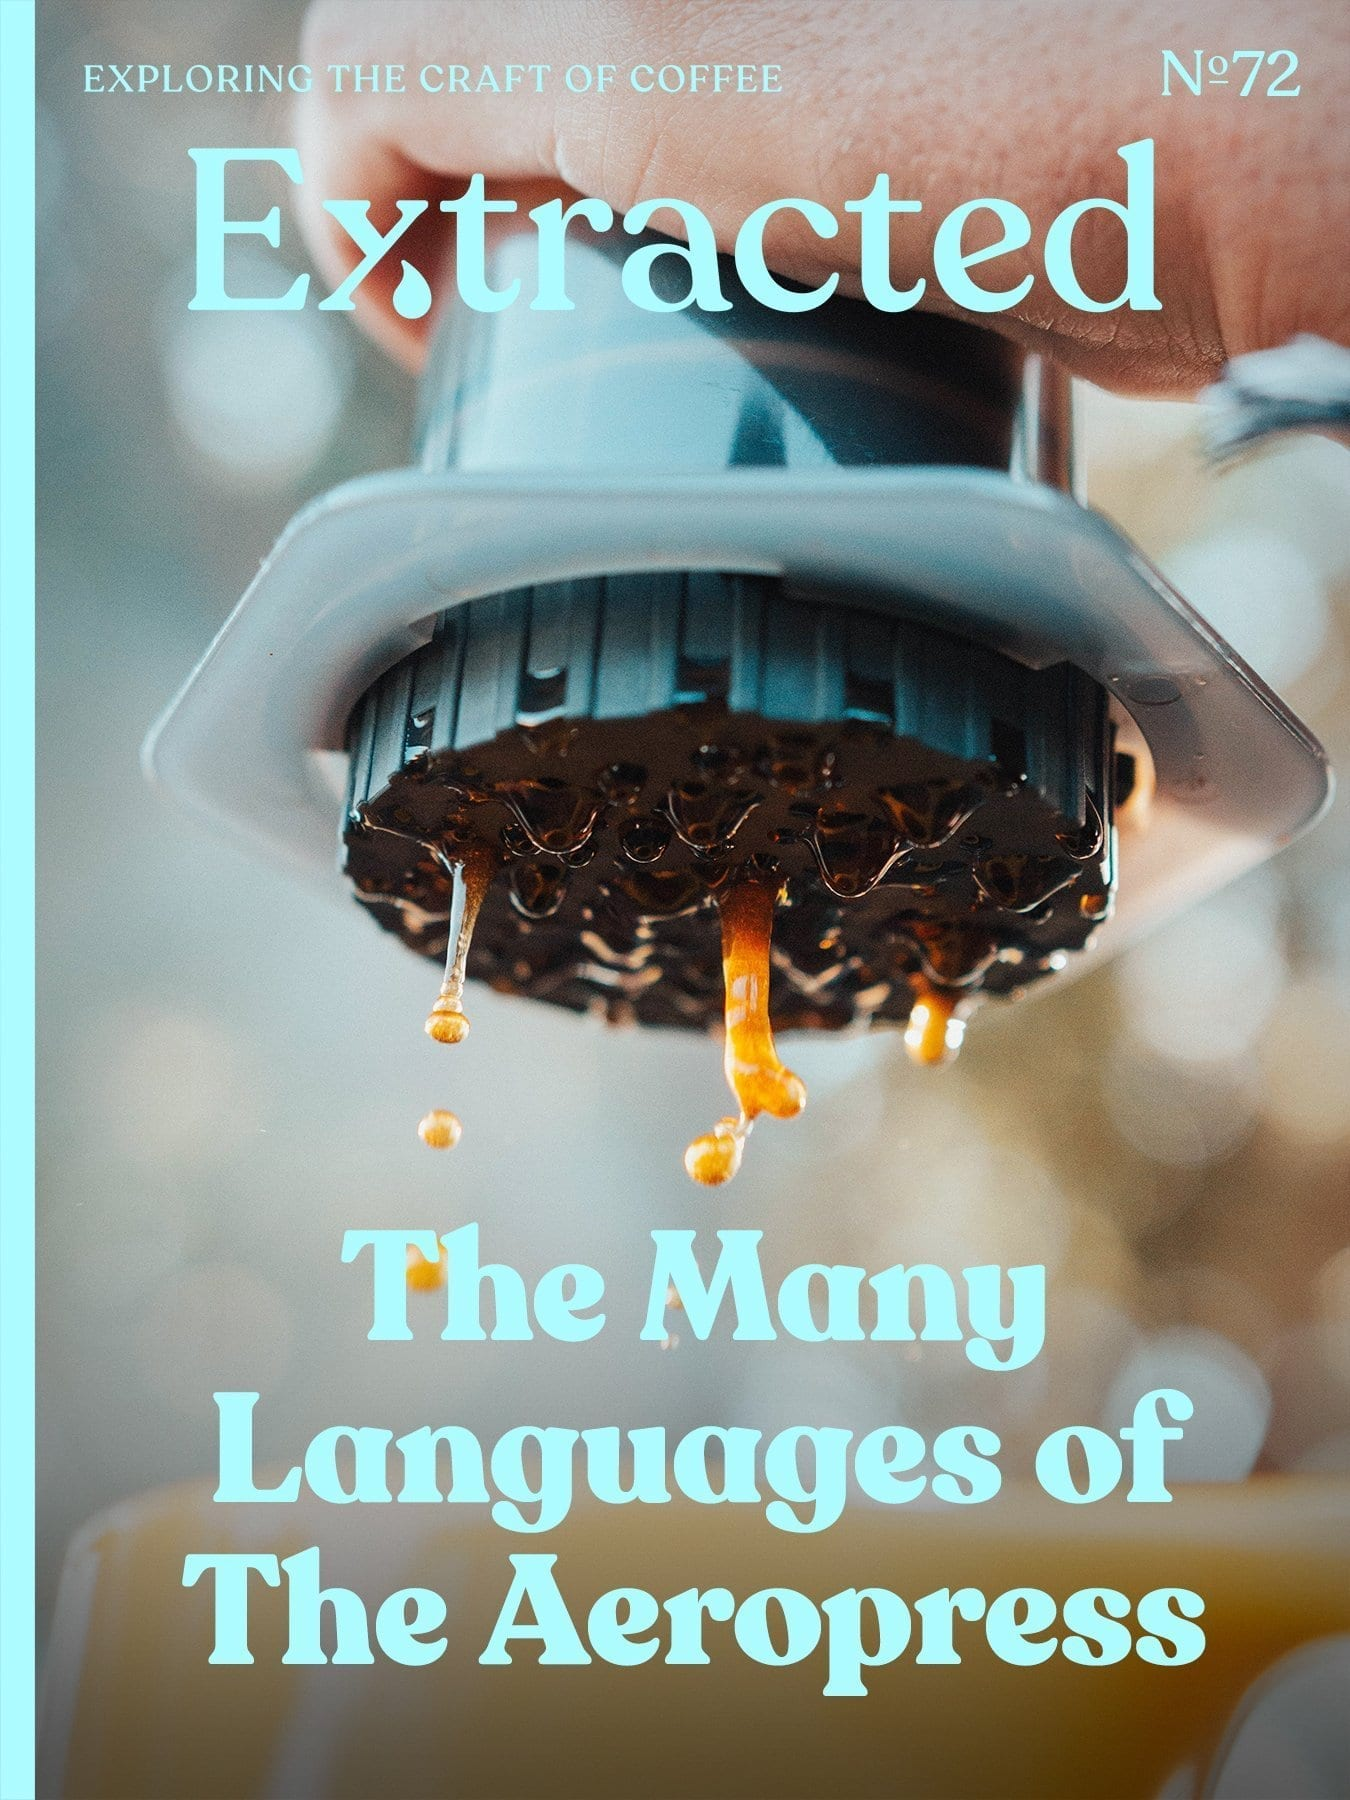 The Aeropress and It's Many Languages - Extracted Magazine Issue 72